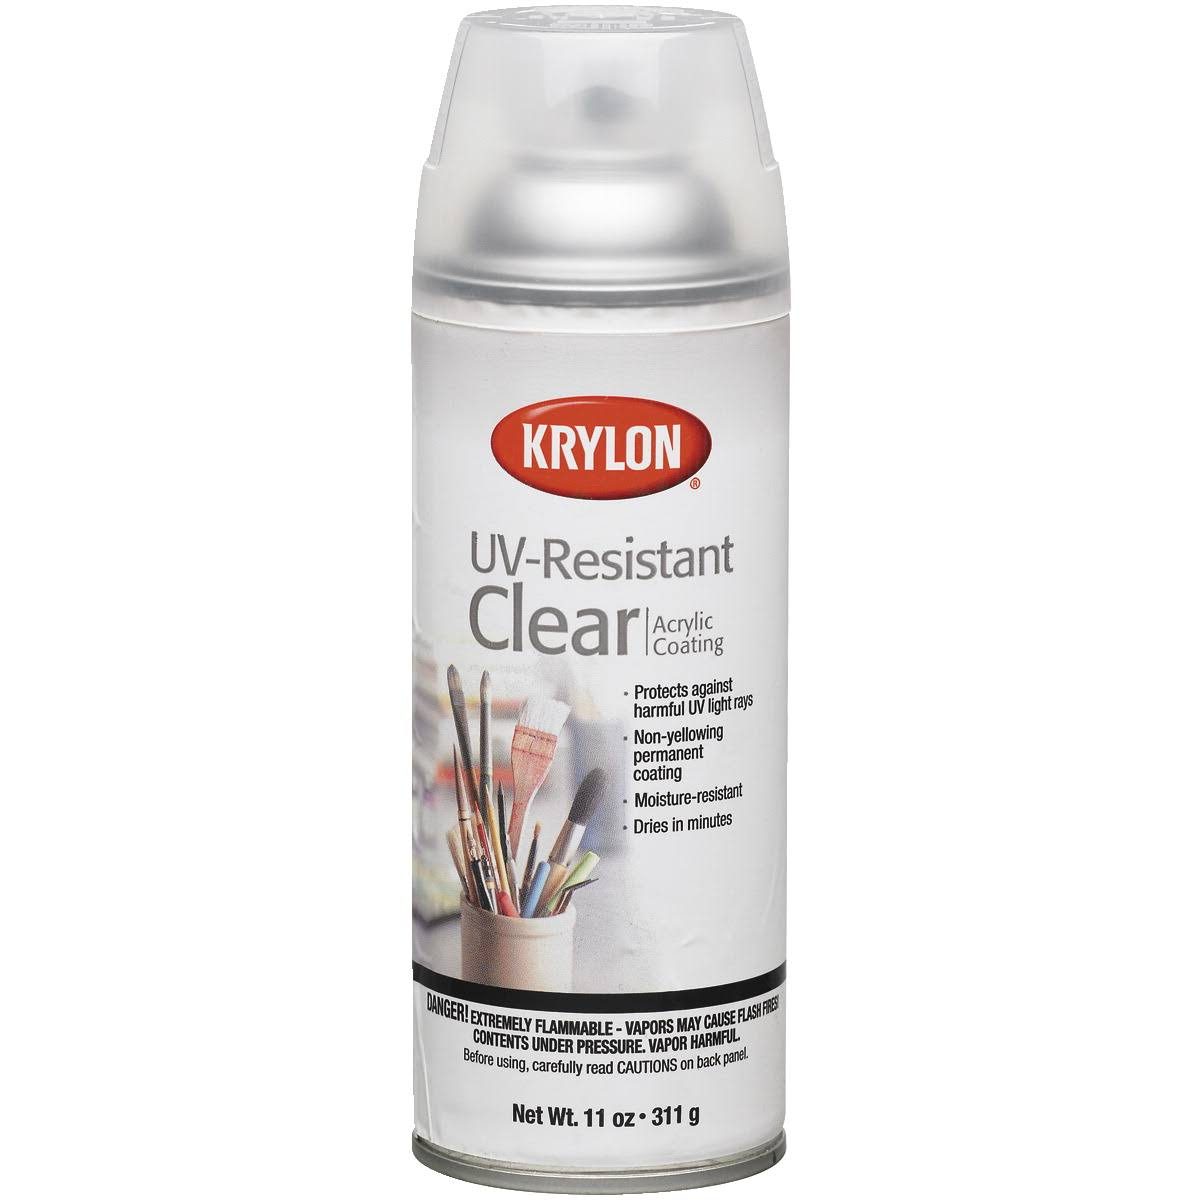 Krylon Artist UV-Resistant Spray Paint - Clear Gloss, 11oz